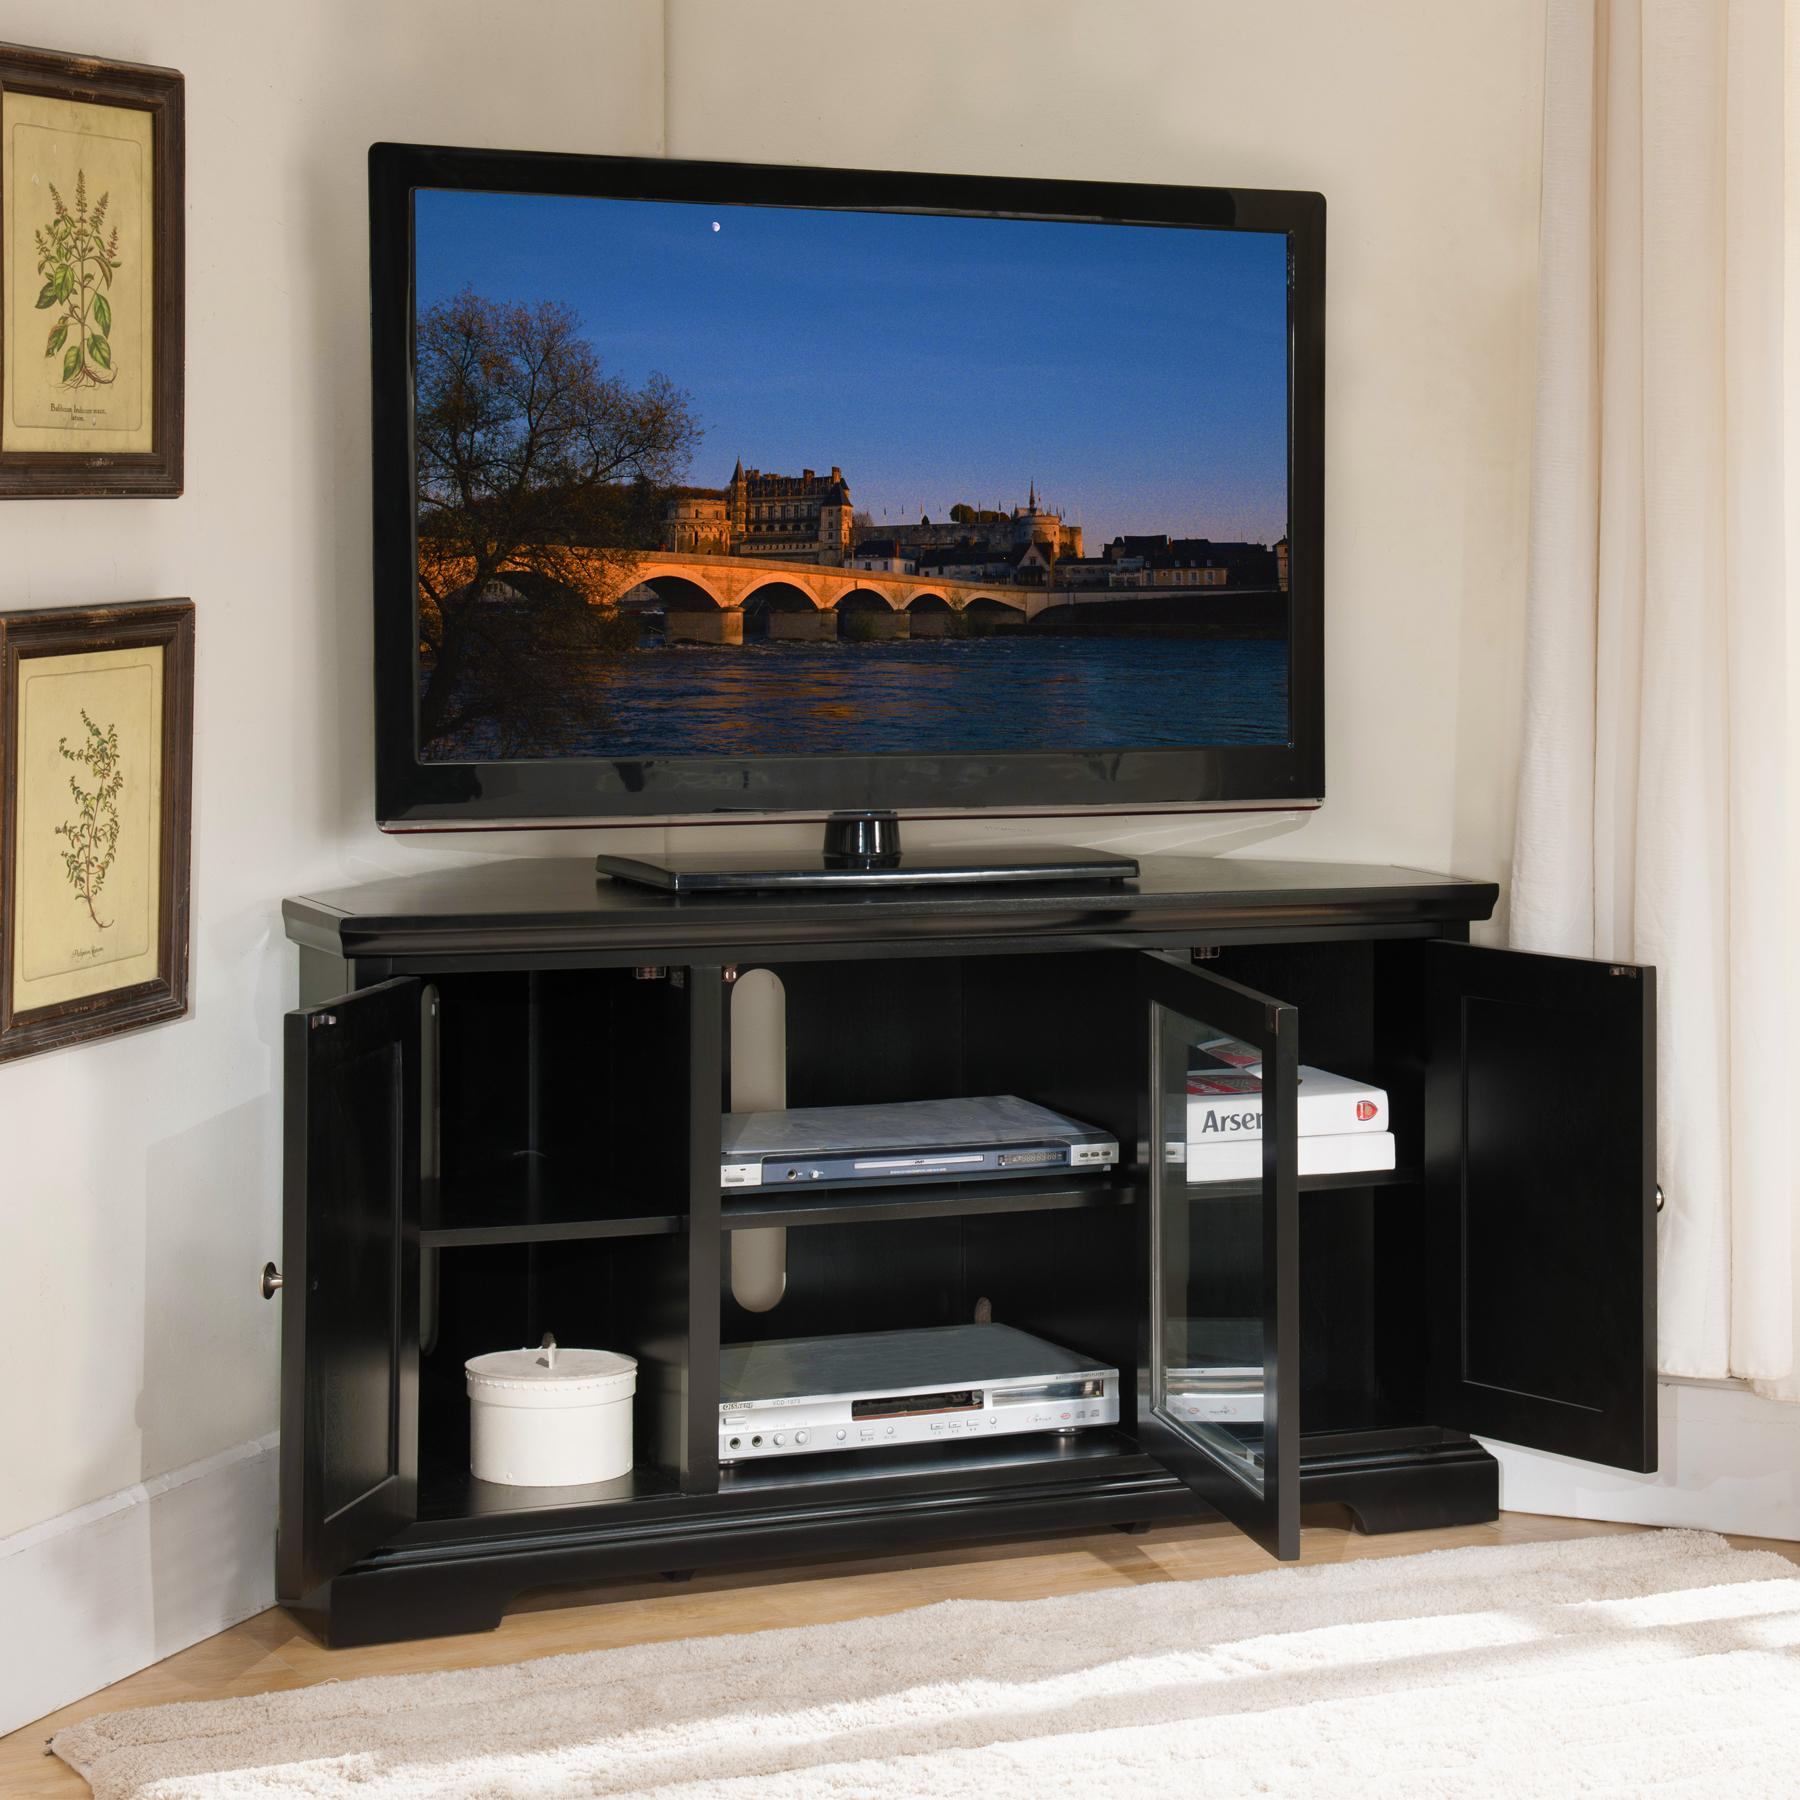 Tv Stands, Wood Tv Stands, Lcd Tv Stand, Corner Tv Stand,